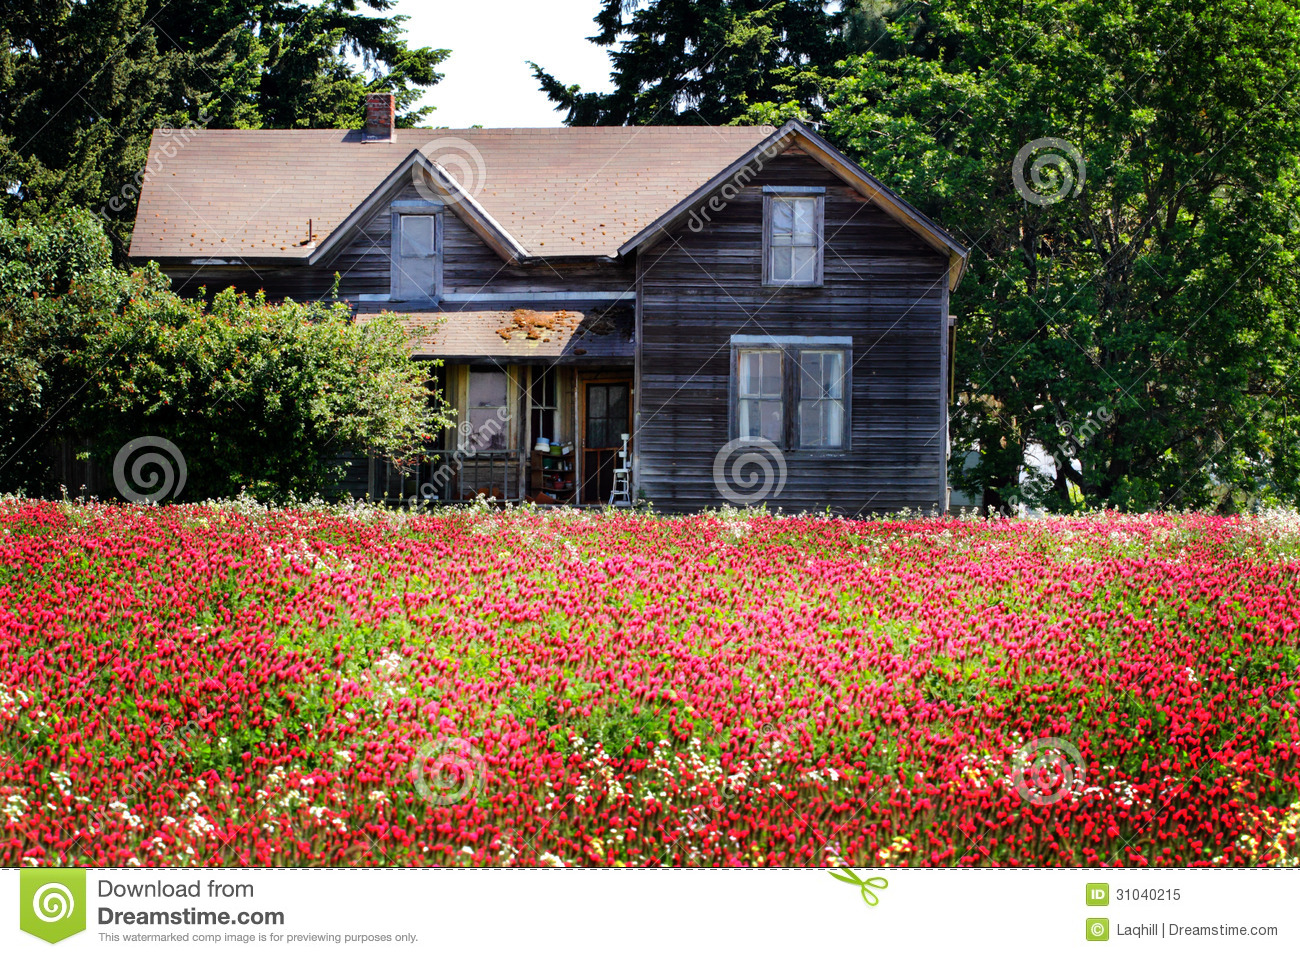 Abandoned homestead royalty free stock photo image 31040215 for Free homestead